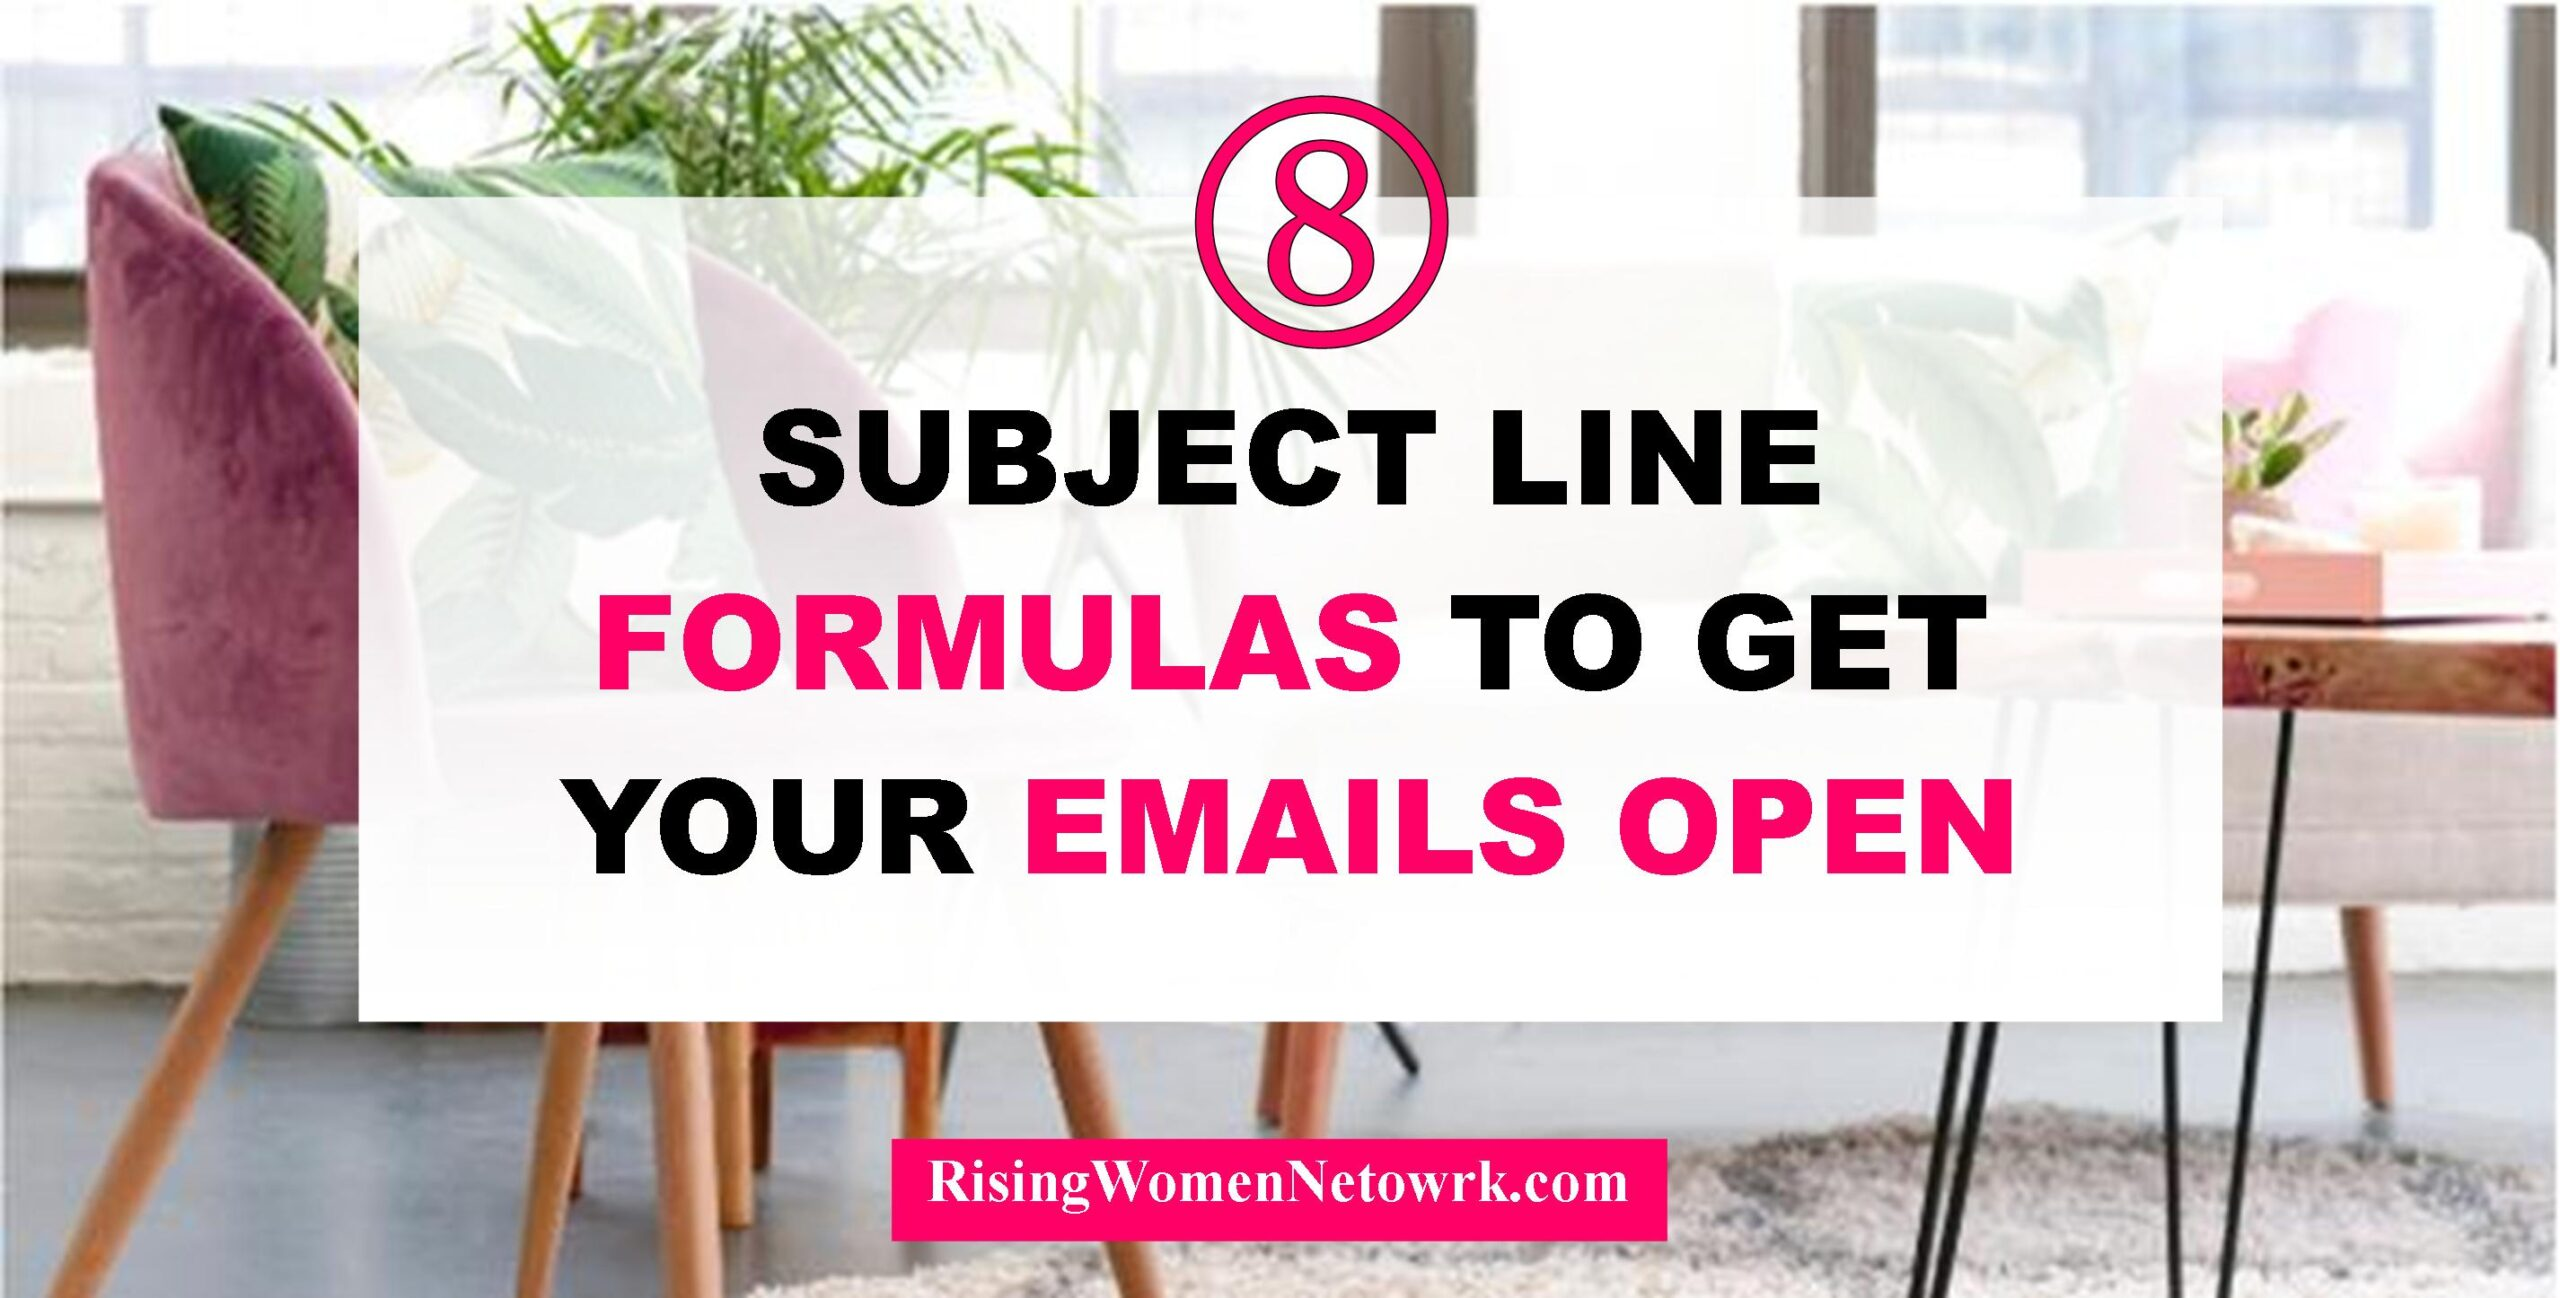 8 Subject Line Formulas to Get Your Emails Open